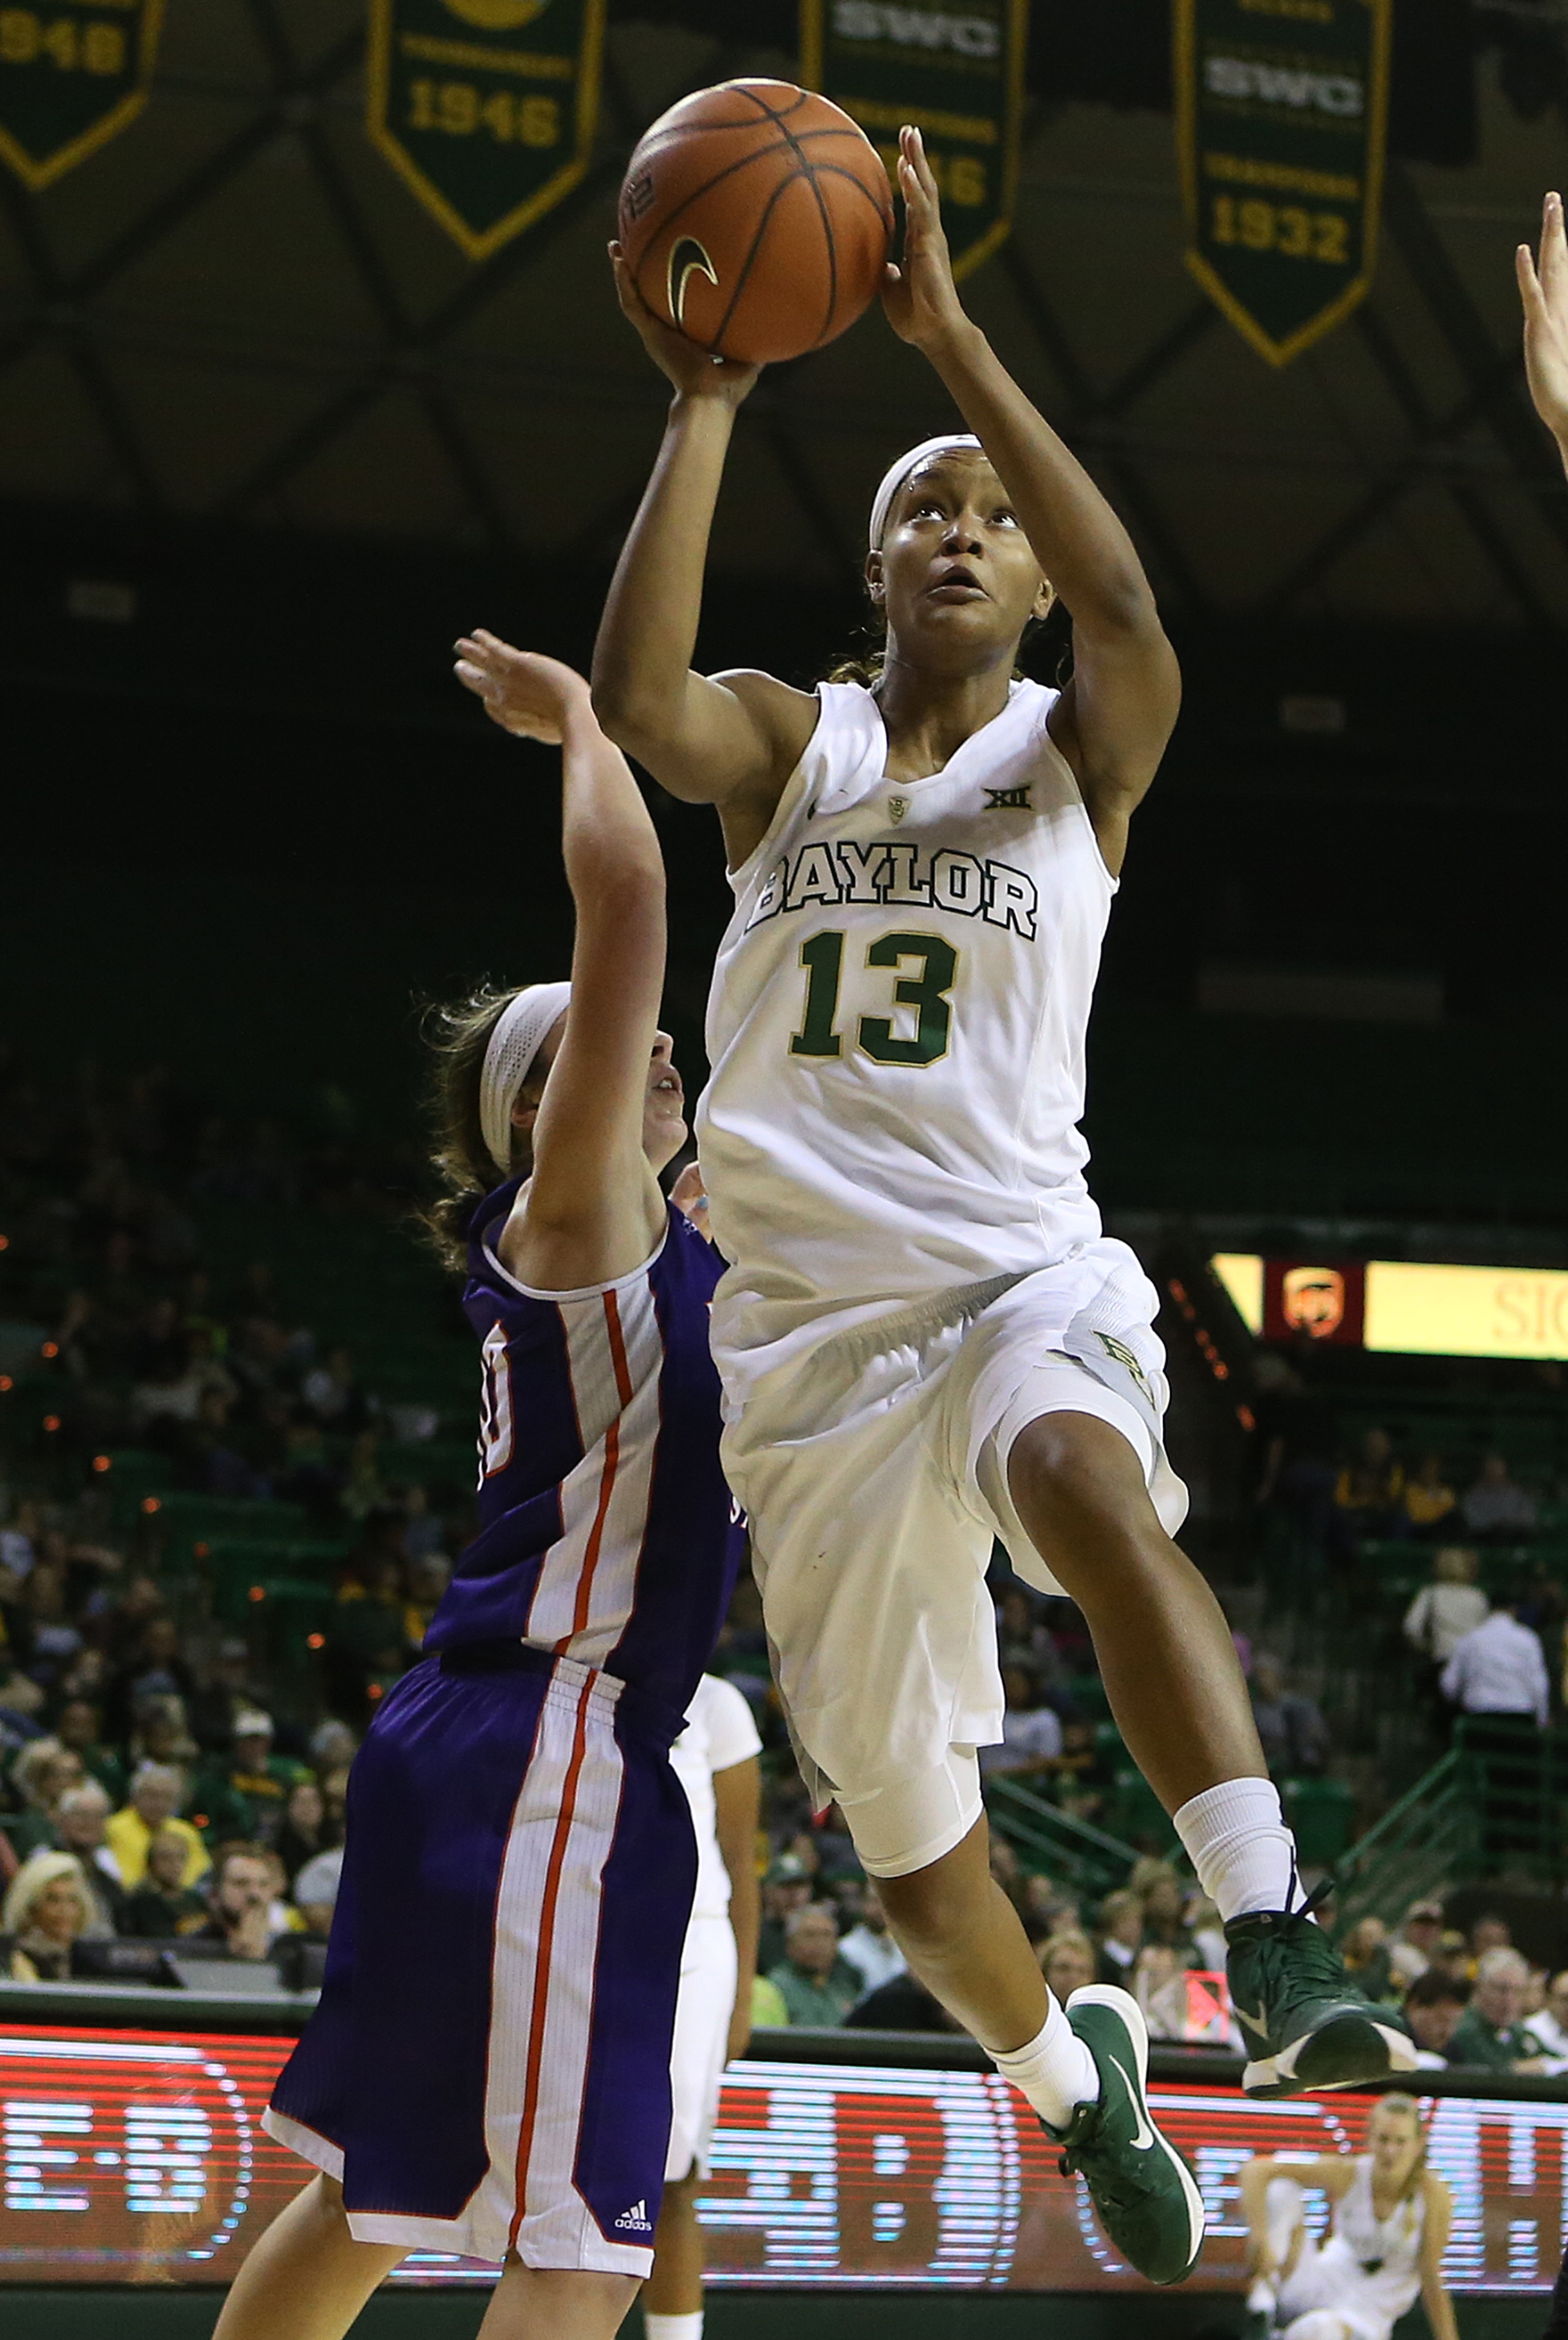 Baylor forward Nina Davis (13) shoots past Northwestern State forward Emerald Mayfield (00) in the second half of an NCAA college basketball game, Friday, Dec. 4, 2015, in Waco, Texas. (AP Photo/Jerry Larson)